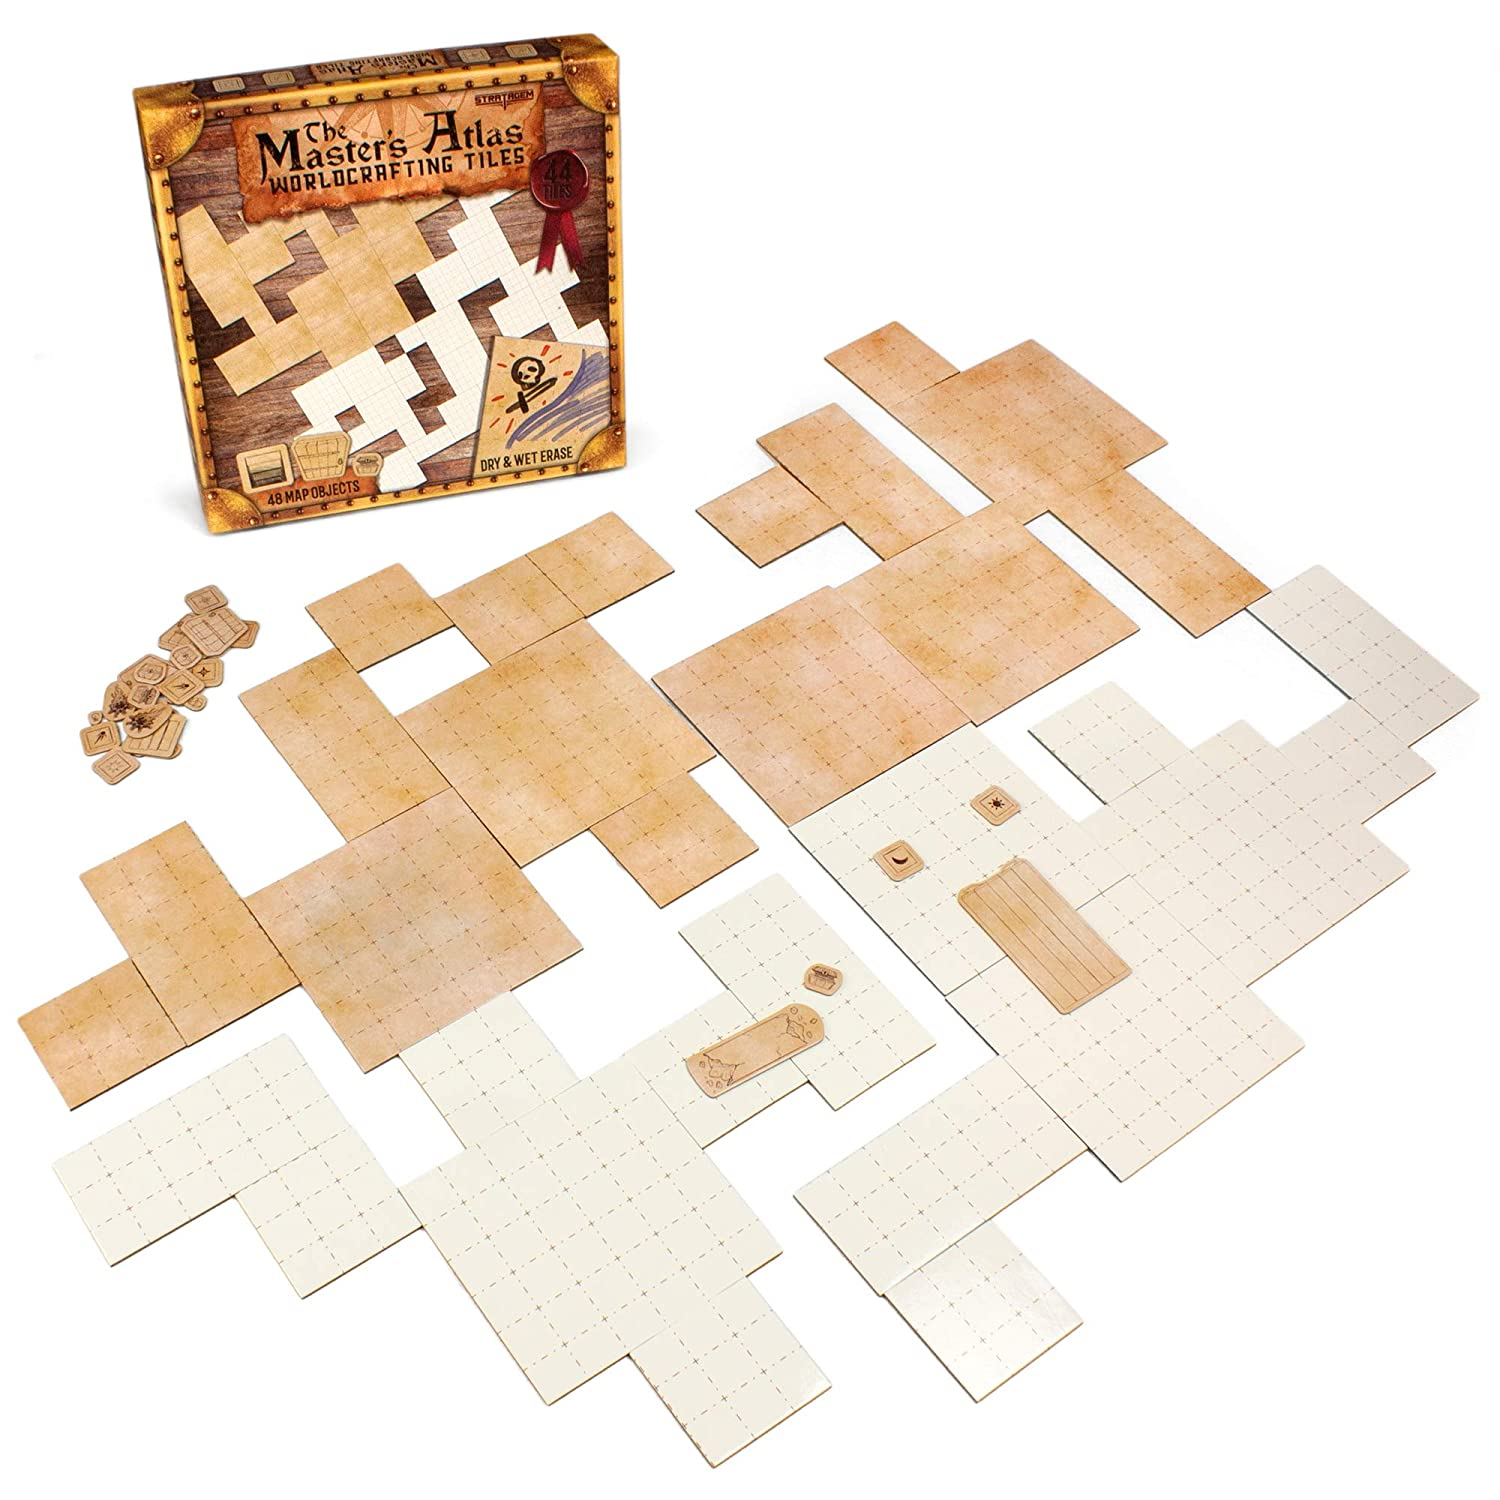 The Master's Atlas (Blank/Parchment) | 44 Reversible Dry & Wet Erase Map  Grid Tiles | 48 Dungeon Object Tokens: Treasure, Doors, Stairs and More |  RPG